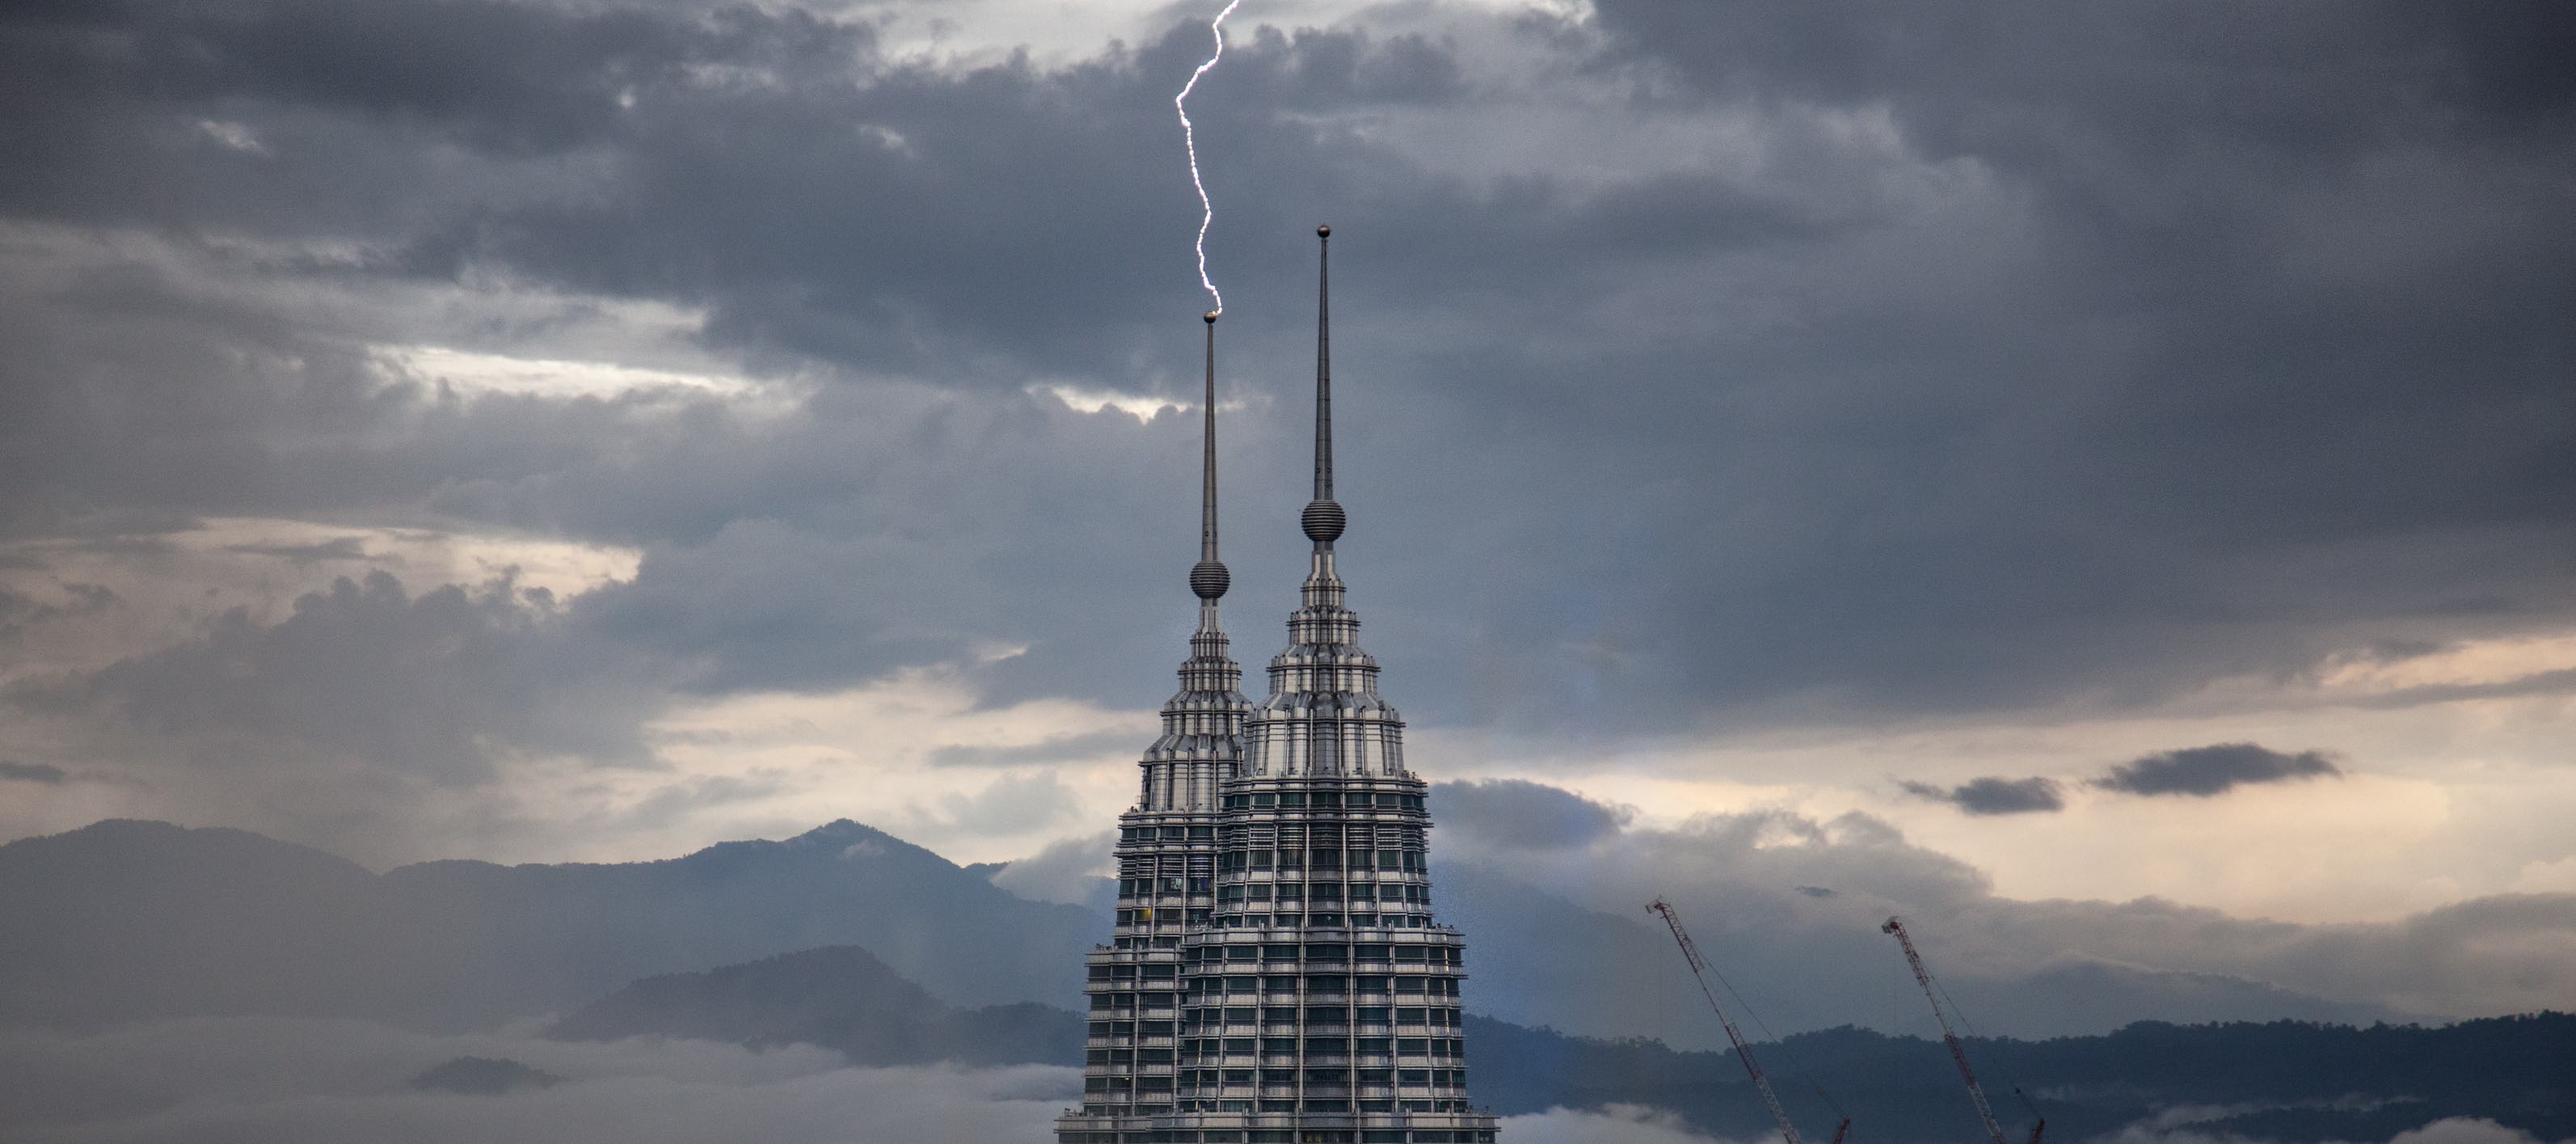 Lightning strikes the Petronas Towers, Kuala Lumpur in April 2017 (Photo: Sitoo/Flickr)